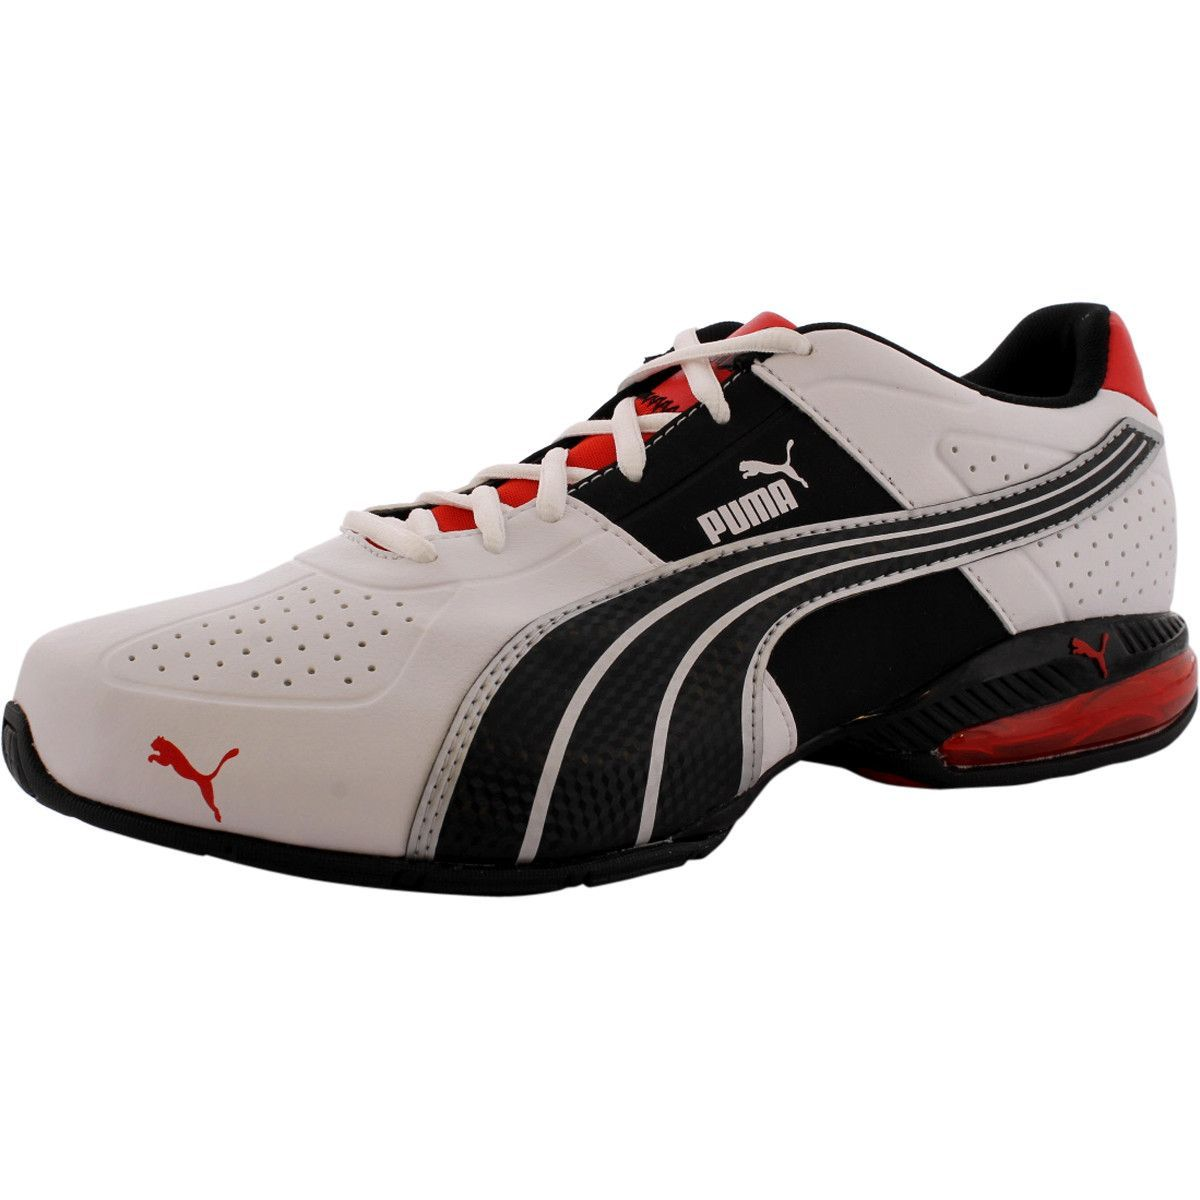 6a41c7fecfc5 Puma - Men s Cell Surin Running Shoes - White Flame Scarlet Black ...